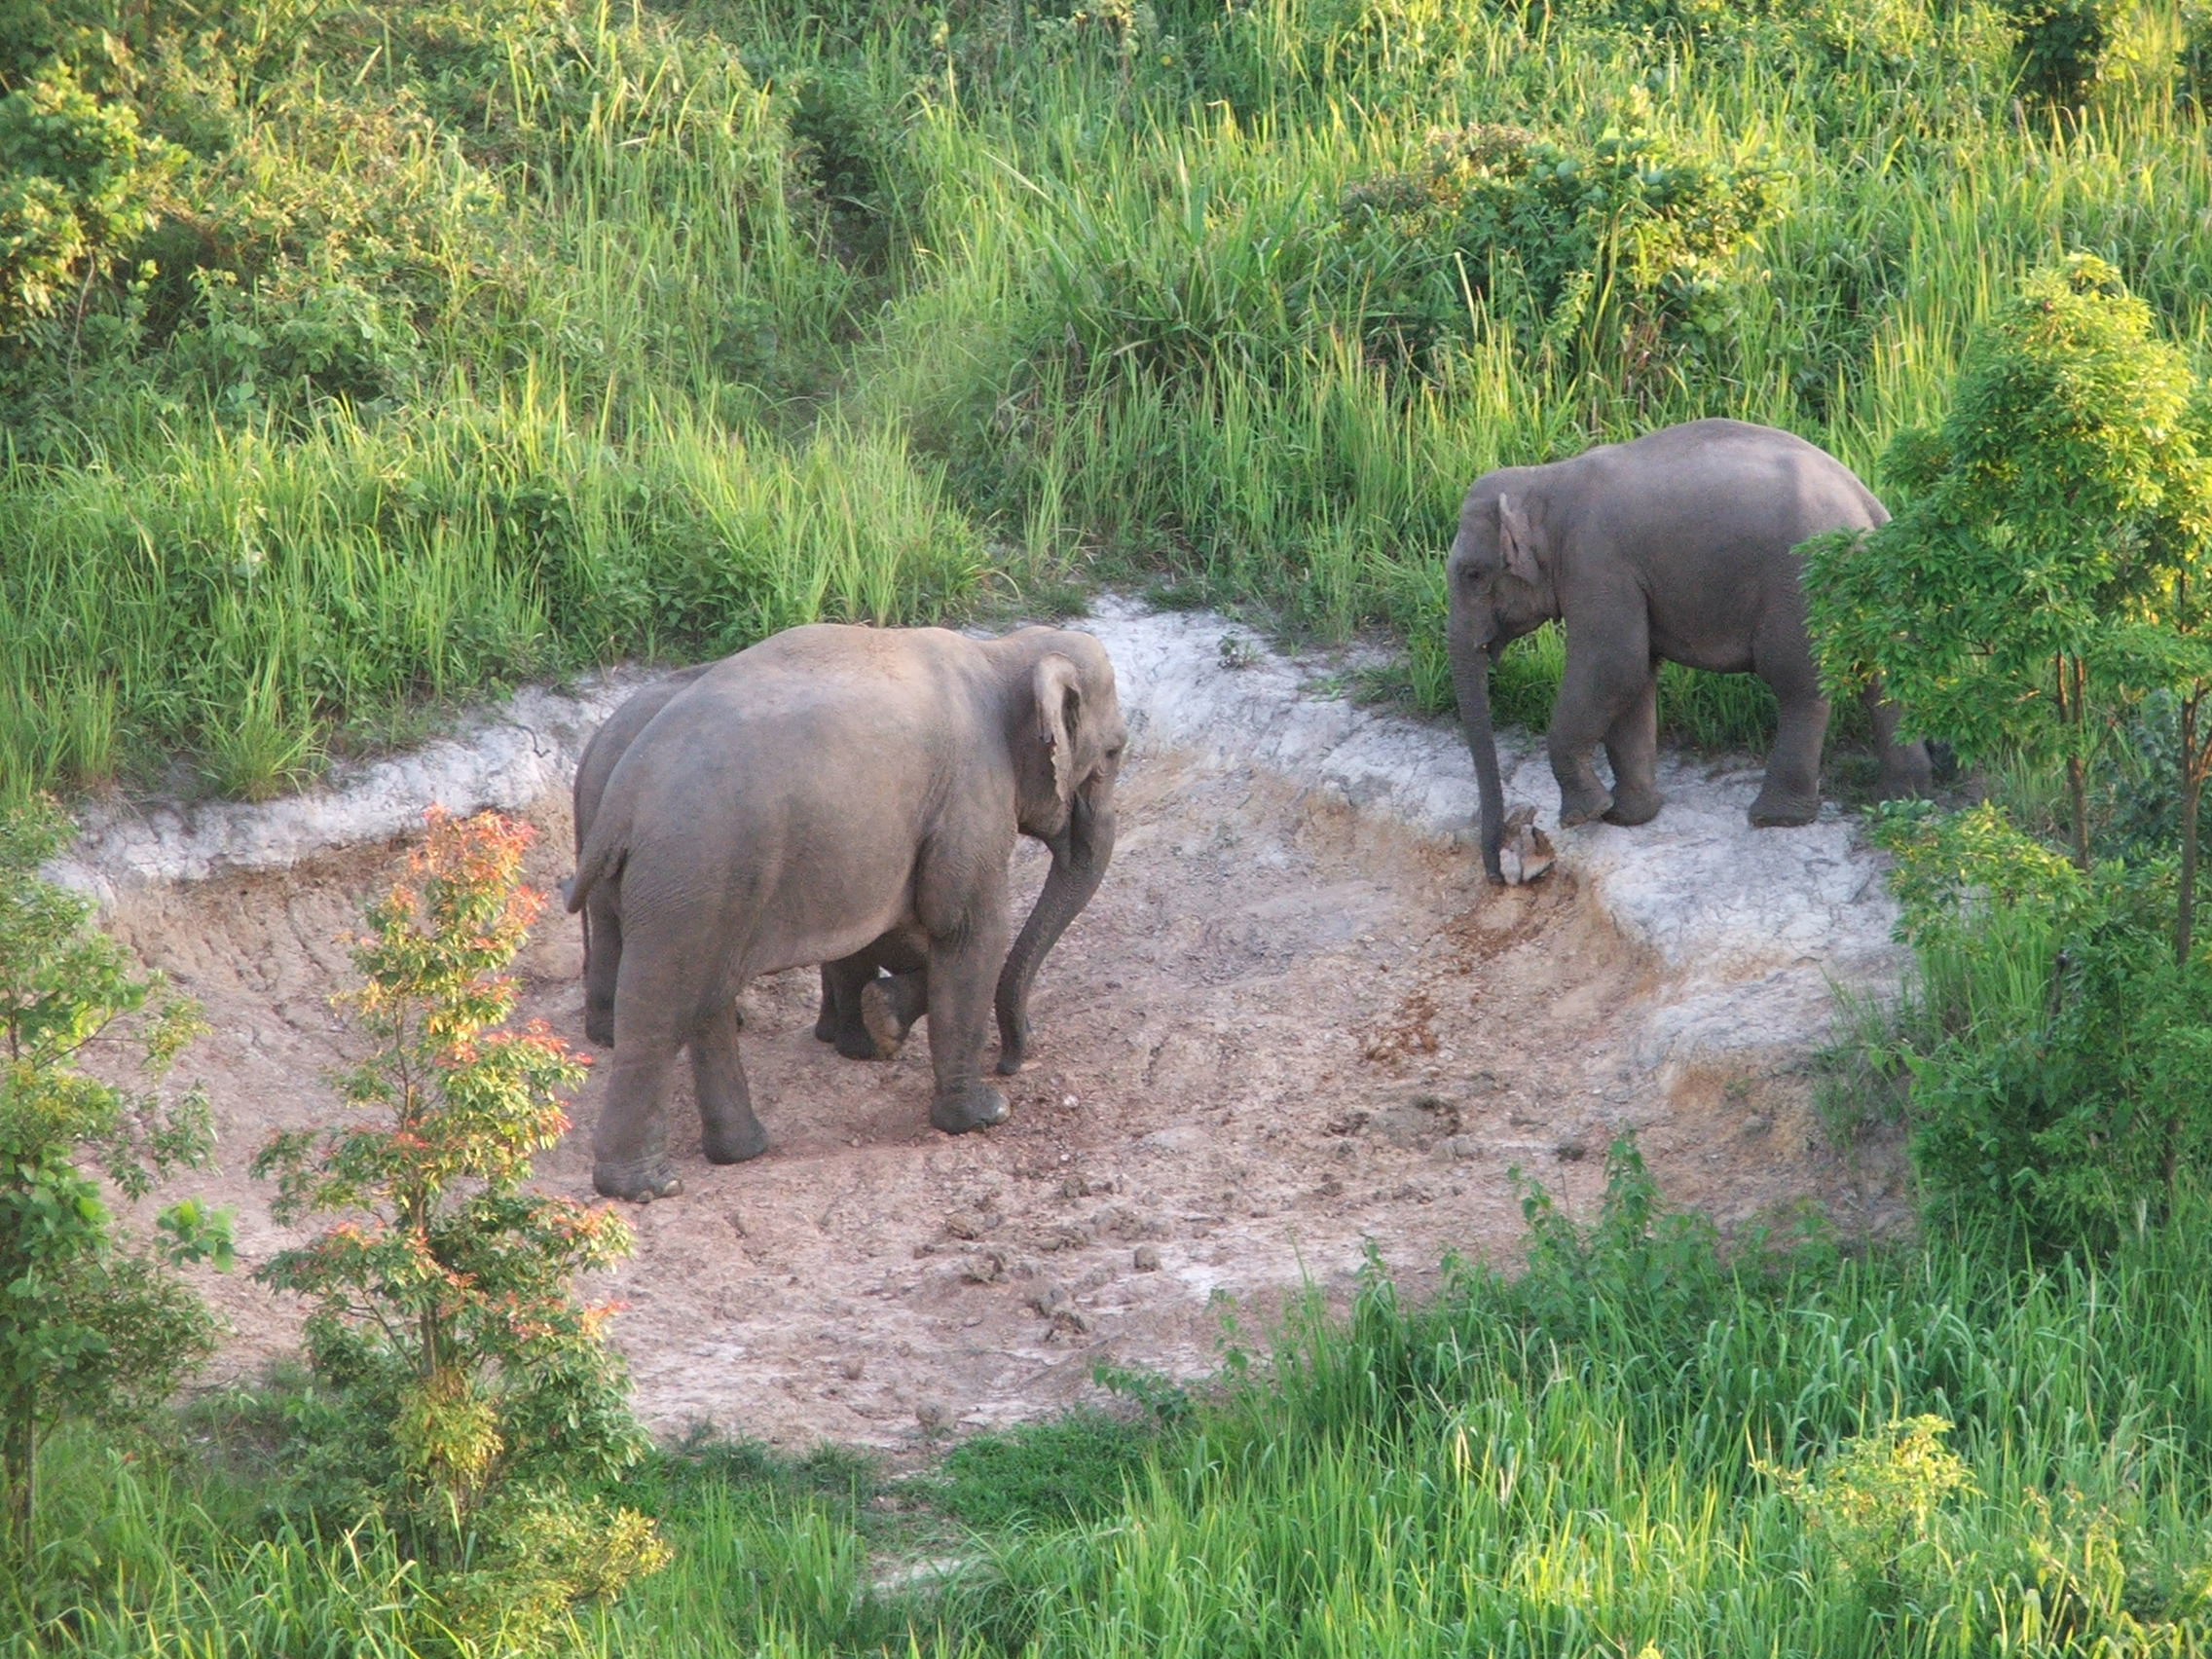 Wild elephants at one of the salt licks in Phu Luang Wildlife Sanctuary. Photo credit: Phu Luang Wild Elephant Food Plant Rehabilitation Project